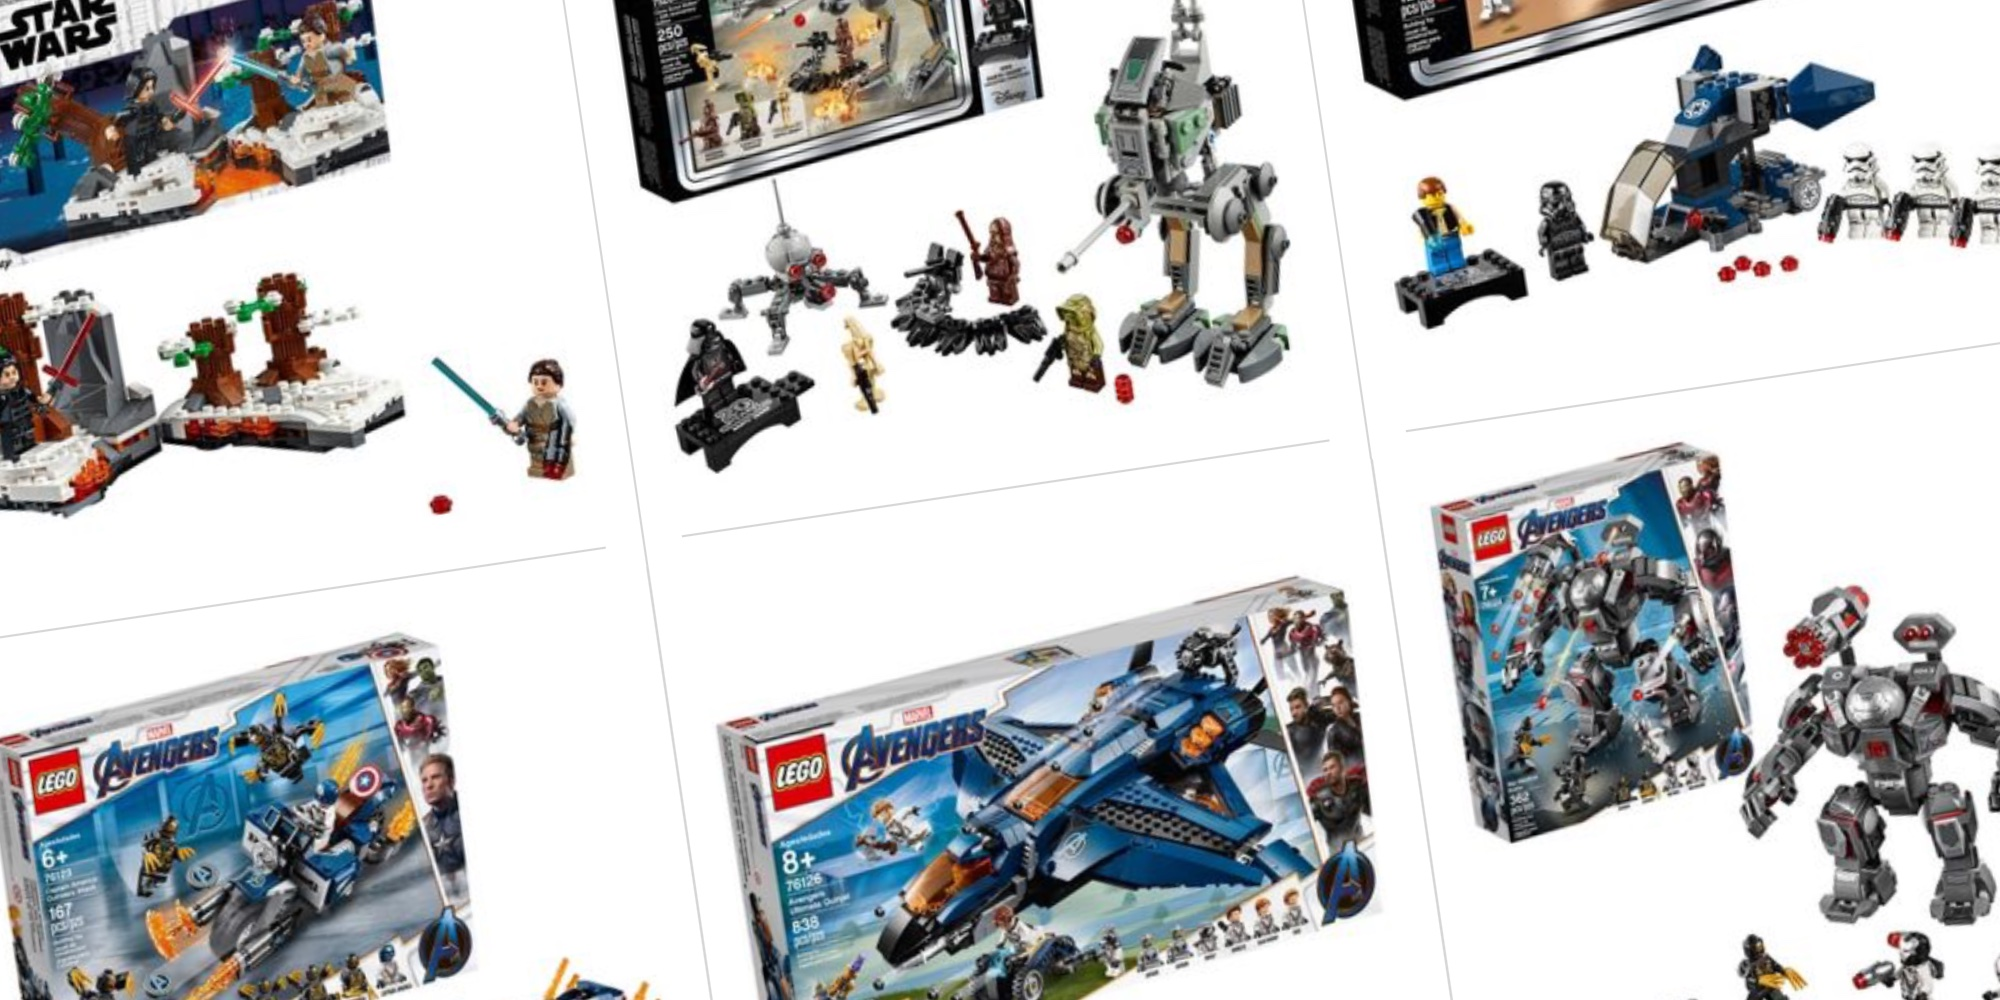 Score a FREE $10 GC with LEGO orders of $50 or more at Target + deals from $16